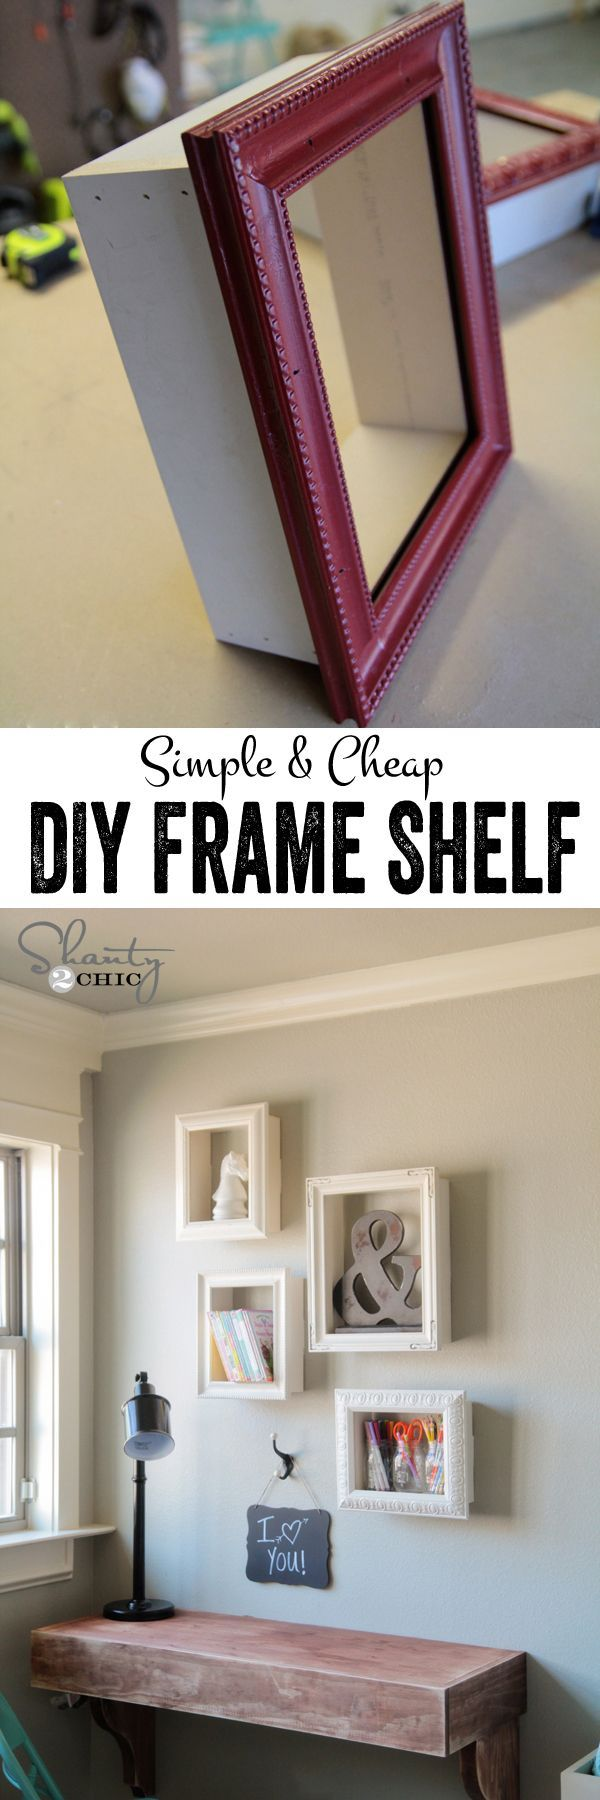 frameshelf